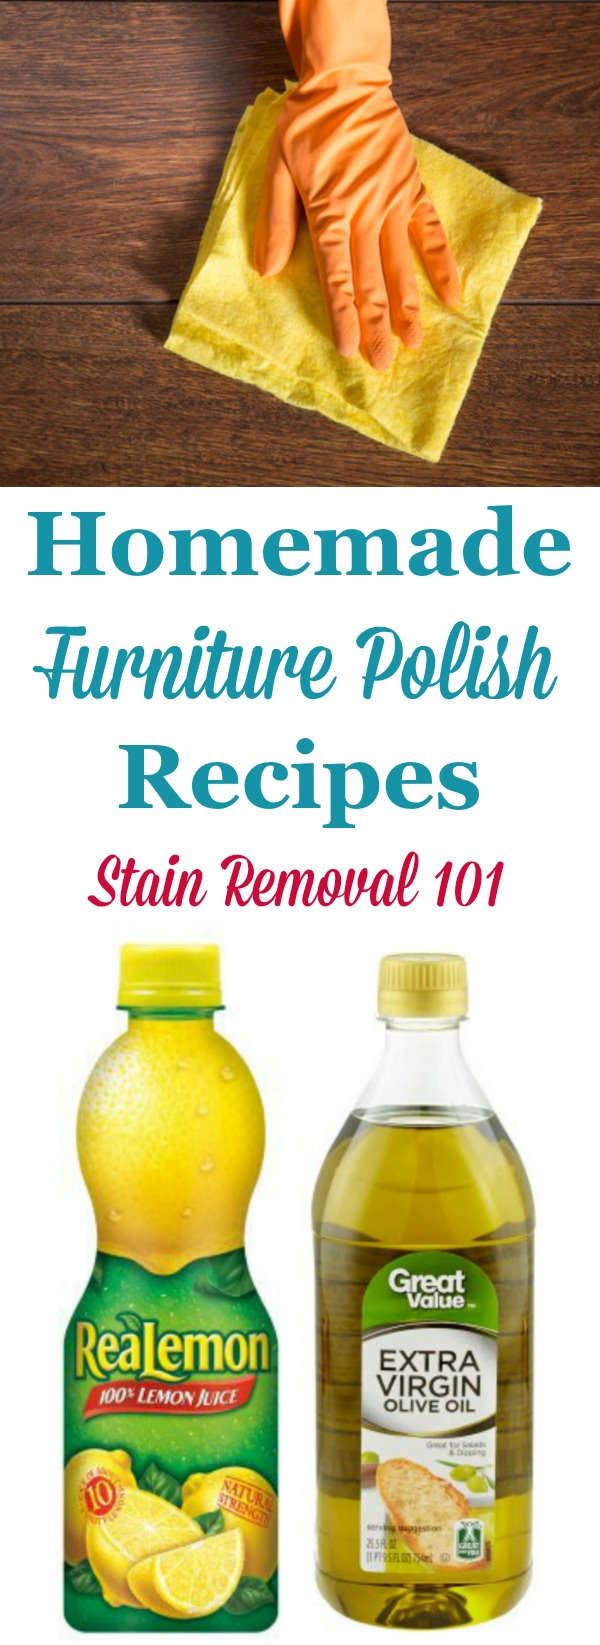 Three natural homemade furniture polish recipes that make wood furniture look great for less {on Stain Removal 101} #HomemadeFurniturePolish #NaturalFurniturePolish #HomemadeCleaningProducts